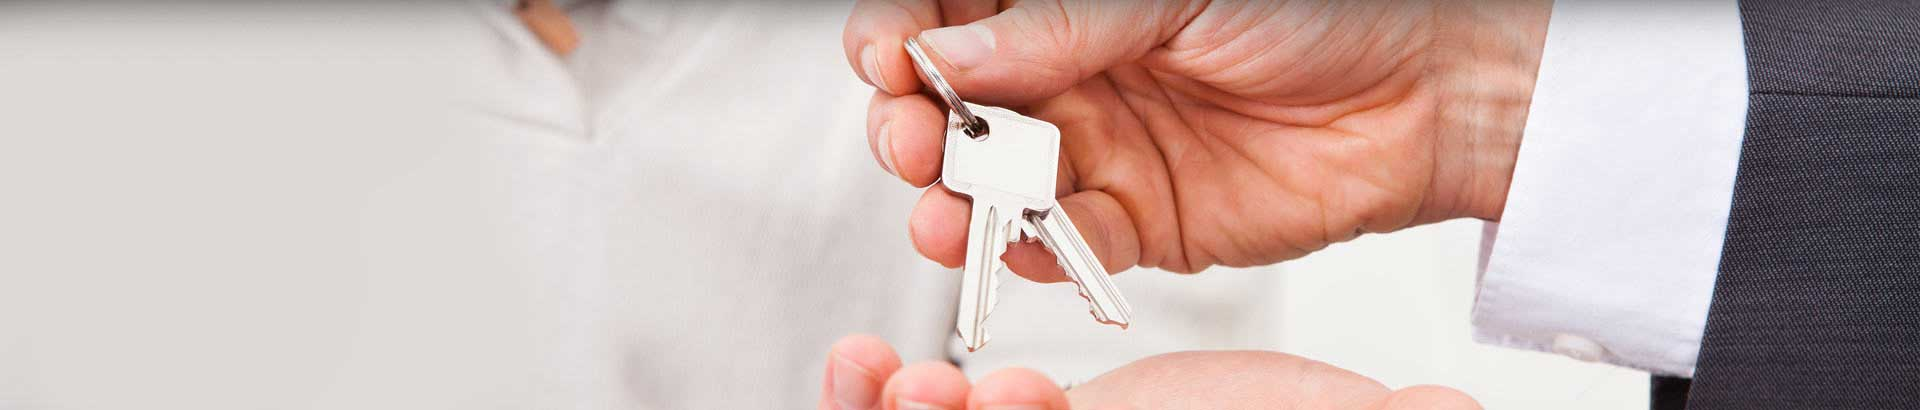 "<h1>Auckland Locksmith</h1> <h2>Need Keys Now?</h2> <h3>LockSmart is mobile</h3> <div class=""button-container""><a href=""/enquiry/"">Click to enquire Now</a></div>"